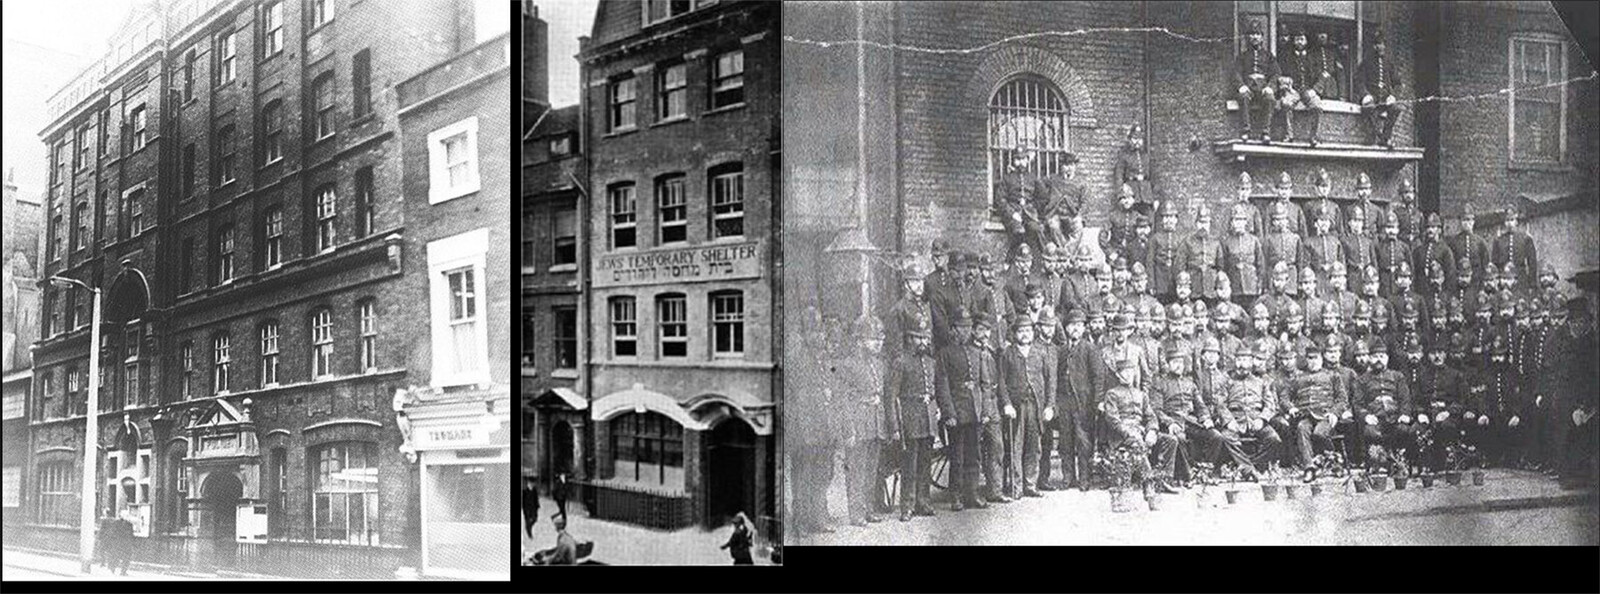 1: The only extant photo of the building used by the police investigating the Ripper case.